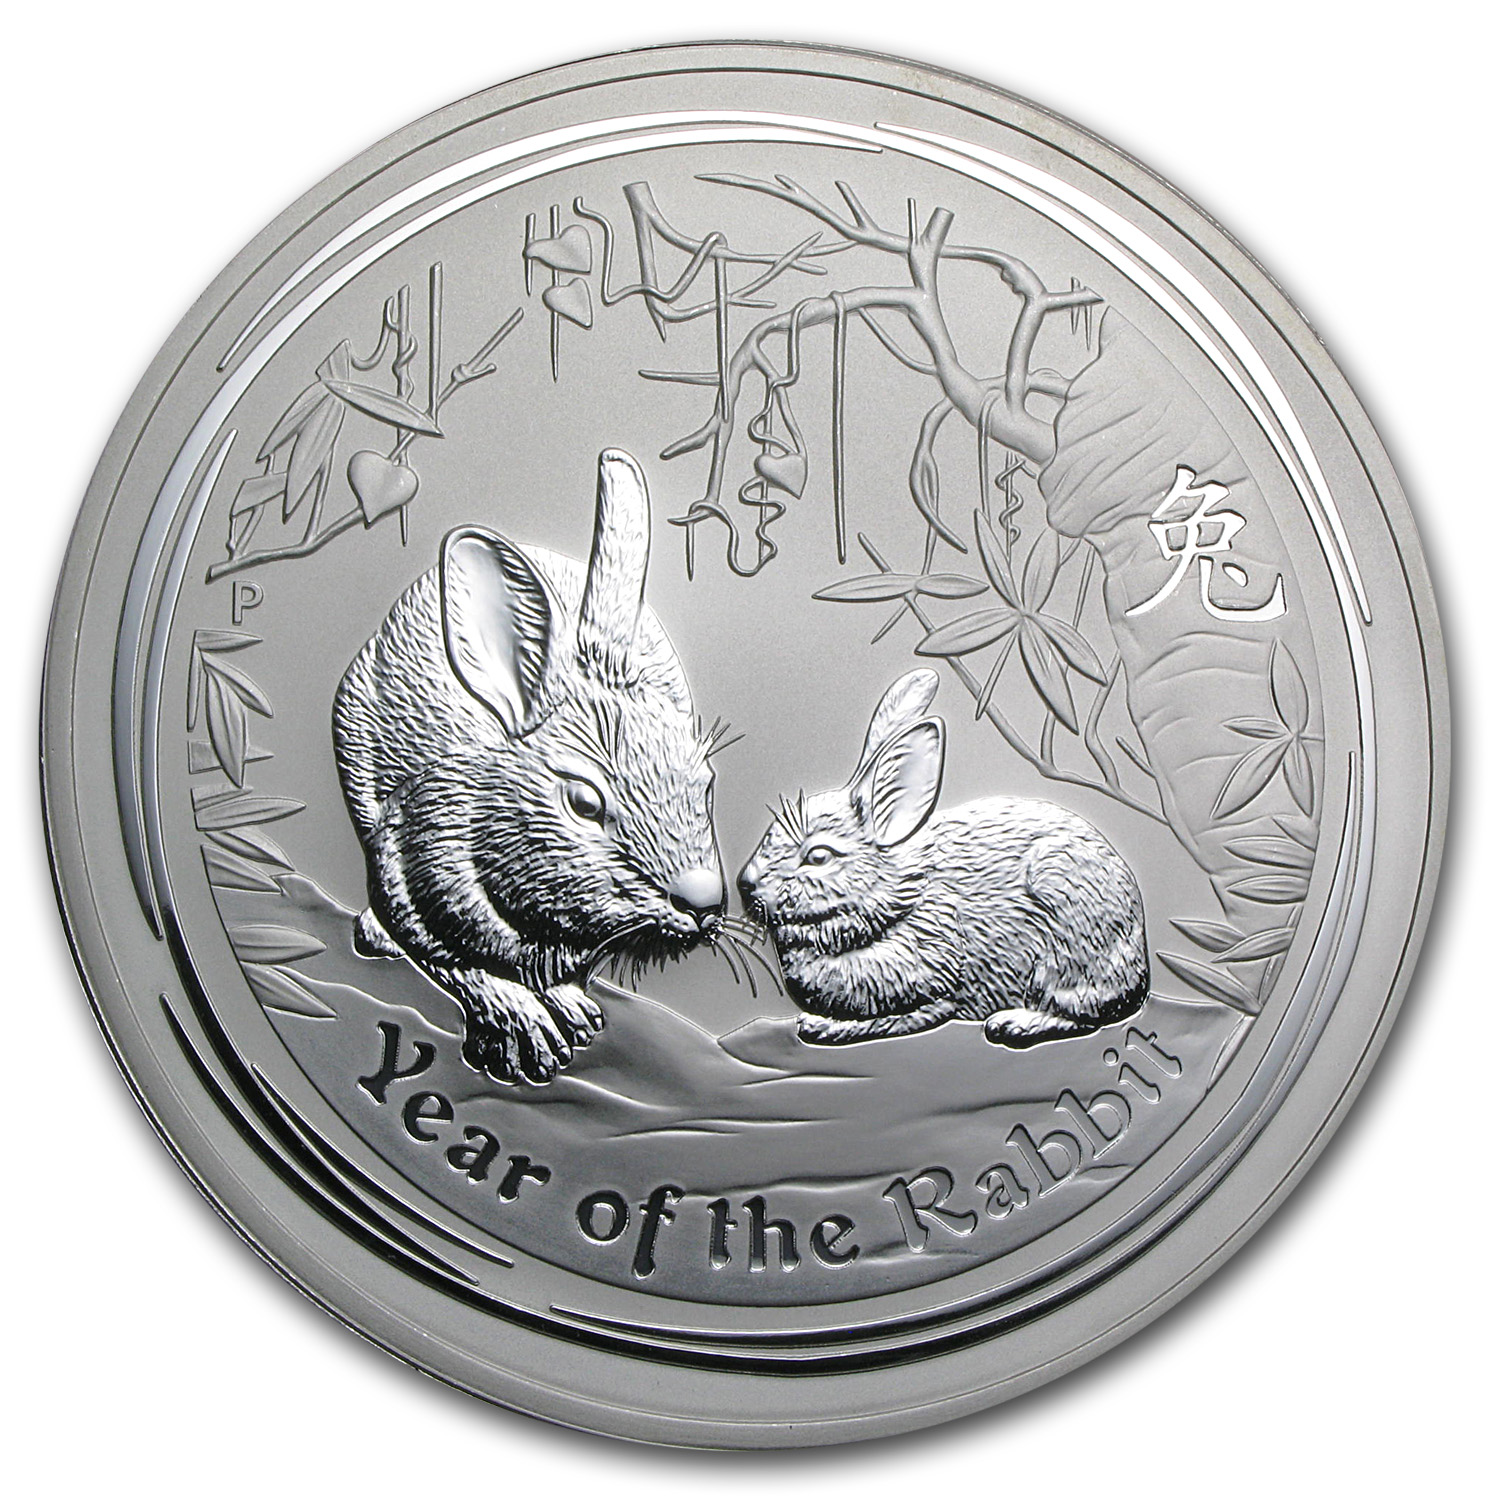 2011 Australia 1 kilo Silver Year of the Rabbit BU